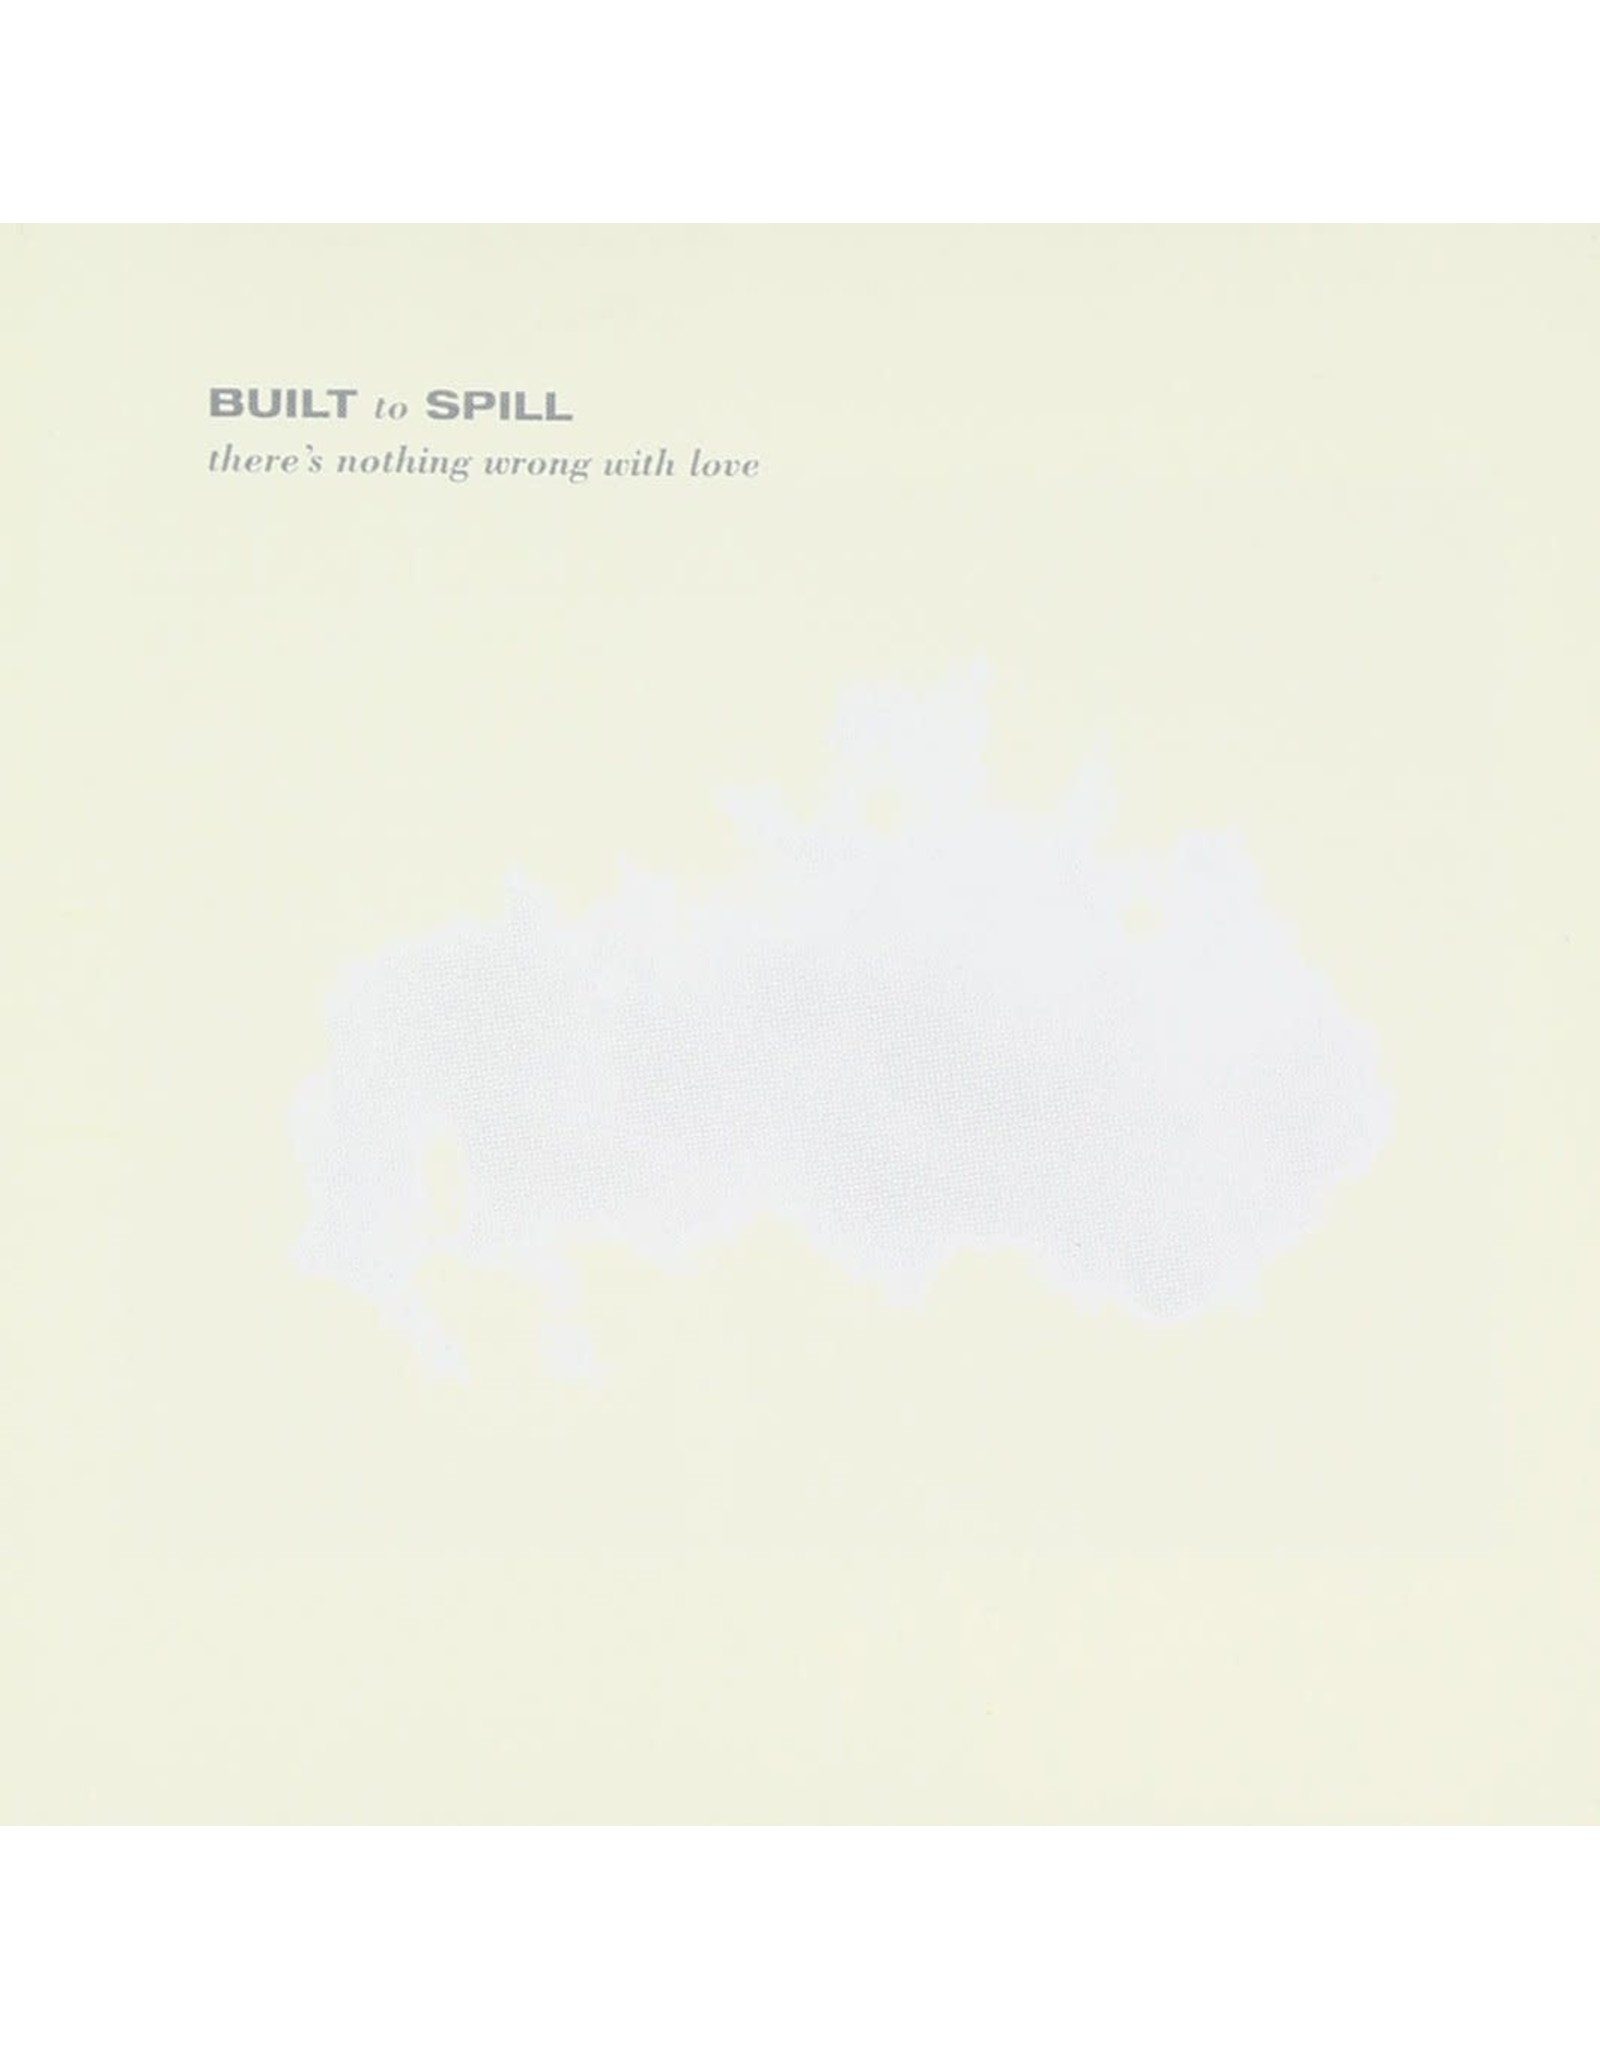 New Vinyl Built To Spill - There's Nothing Wrong With Love LP